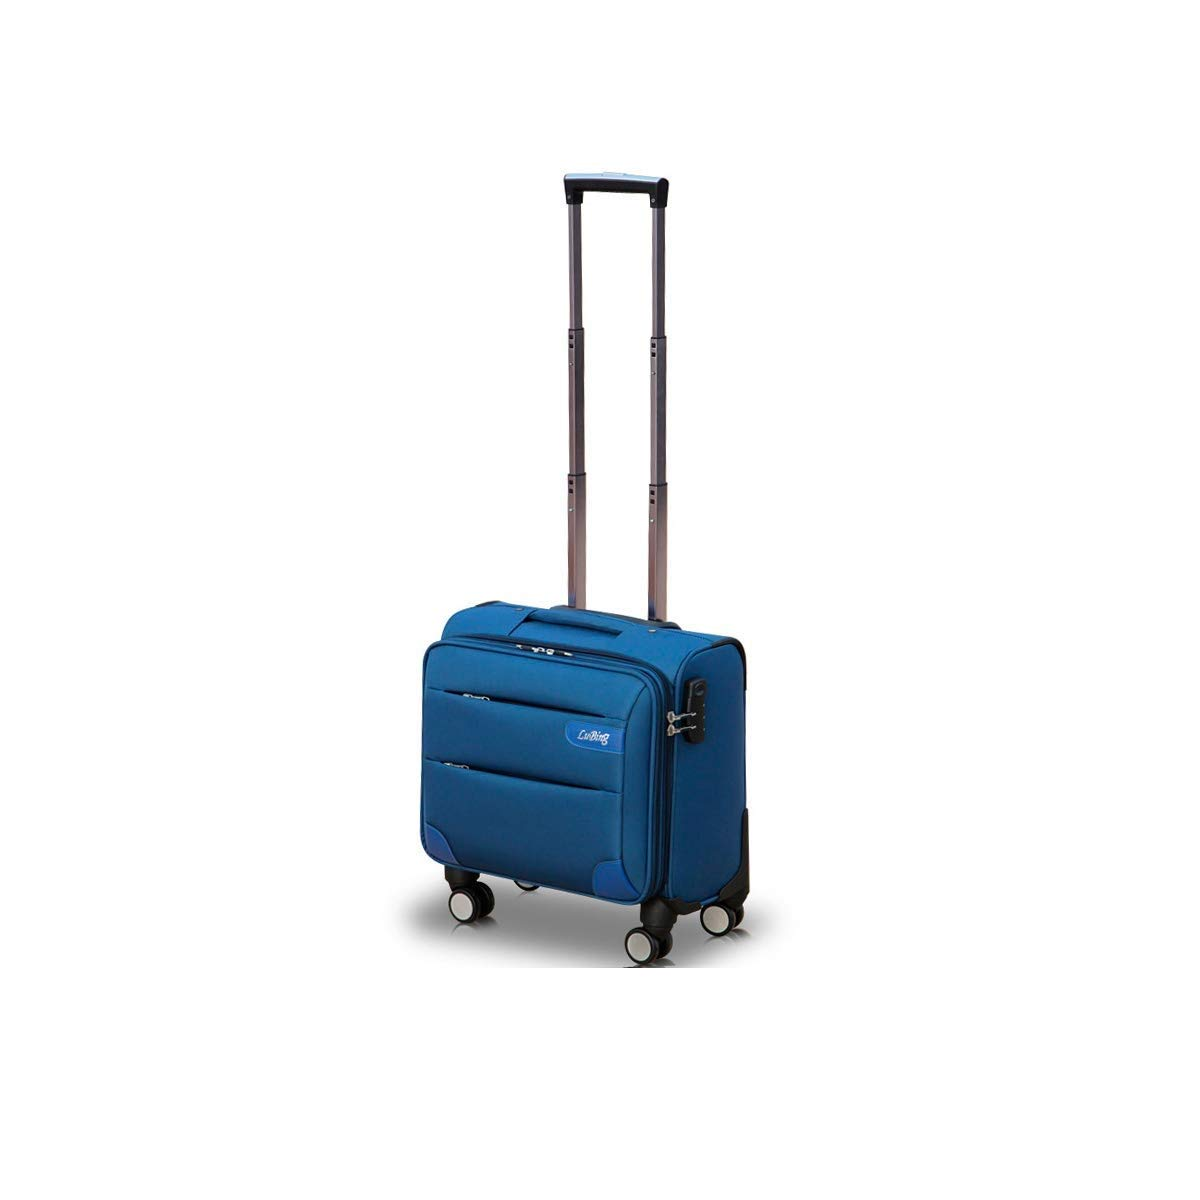 Xingganglengyin Soft Rotating Luggage, Carrying Luggage, Trolley case, Travel Organizer, Best Gift, 16 inches, Black (Color : Purple, Size : 14) (Color : Blue, Size : 20)